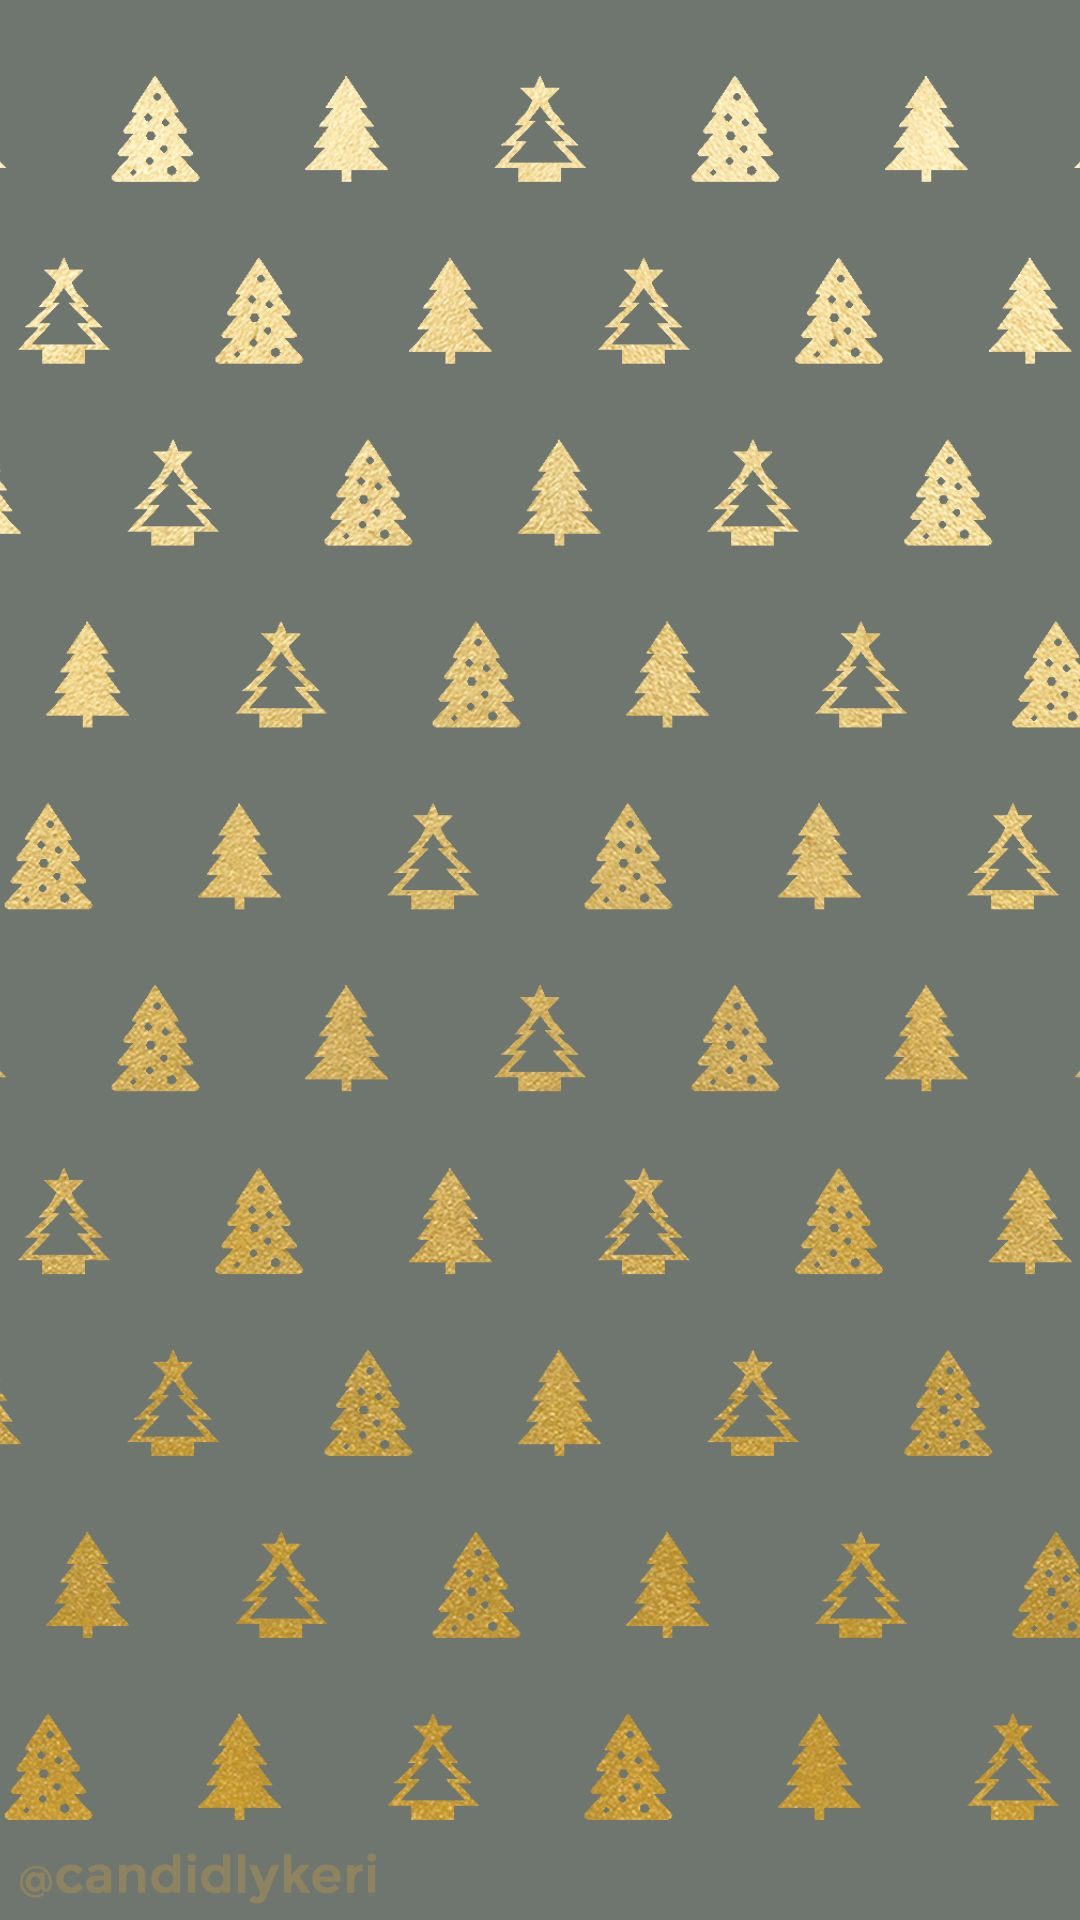 Christmas tree gold foil green background wallpaper you can